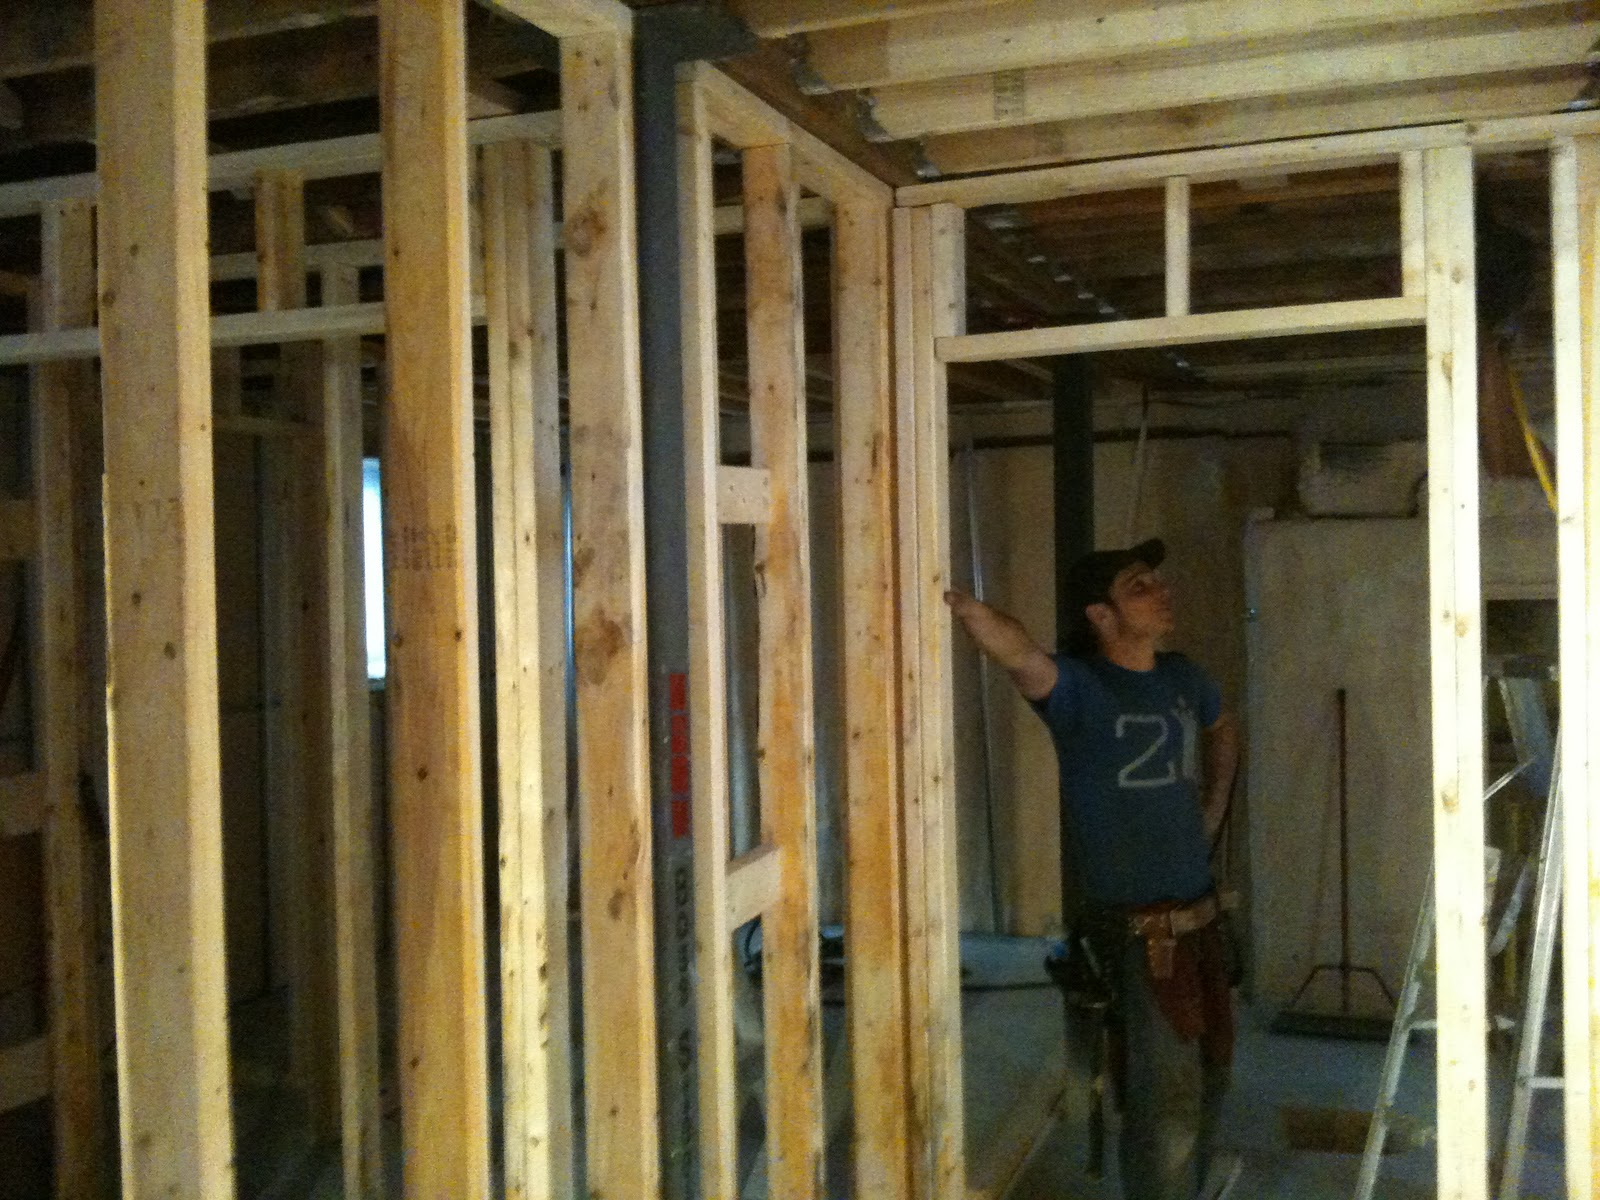 The Reno Coach Passive House Project in Toronto Basement wall